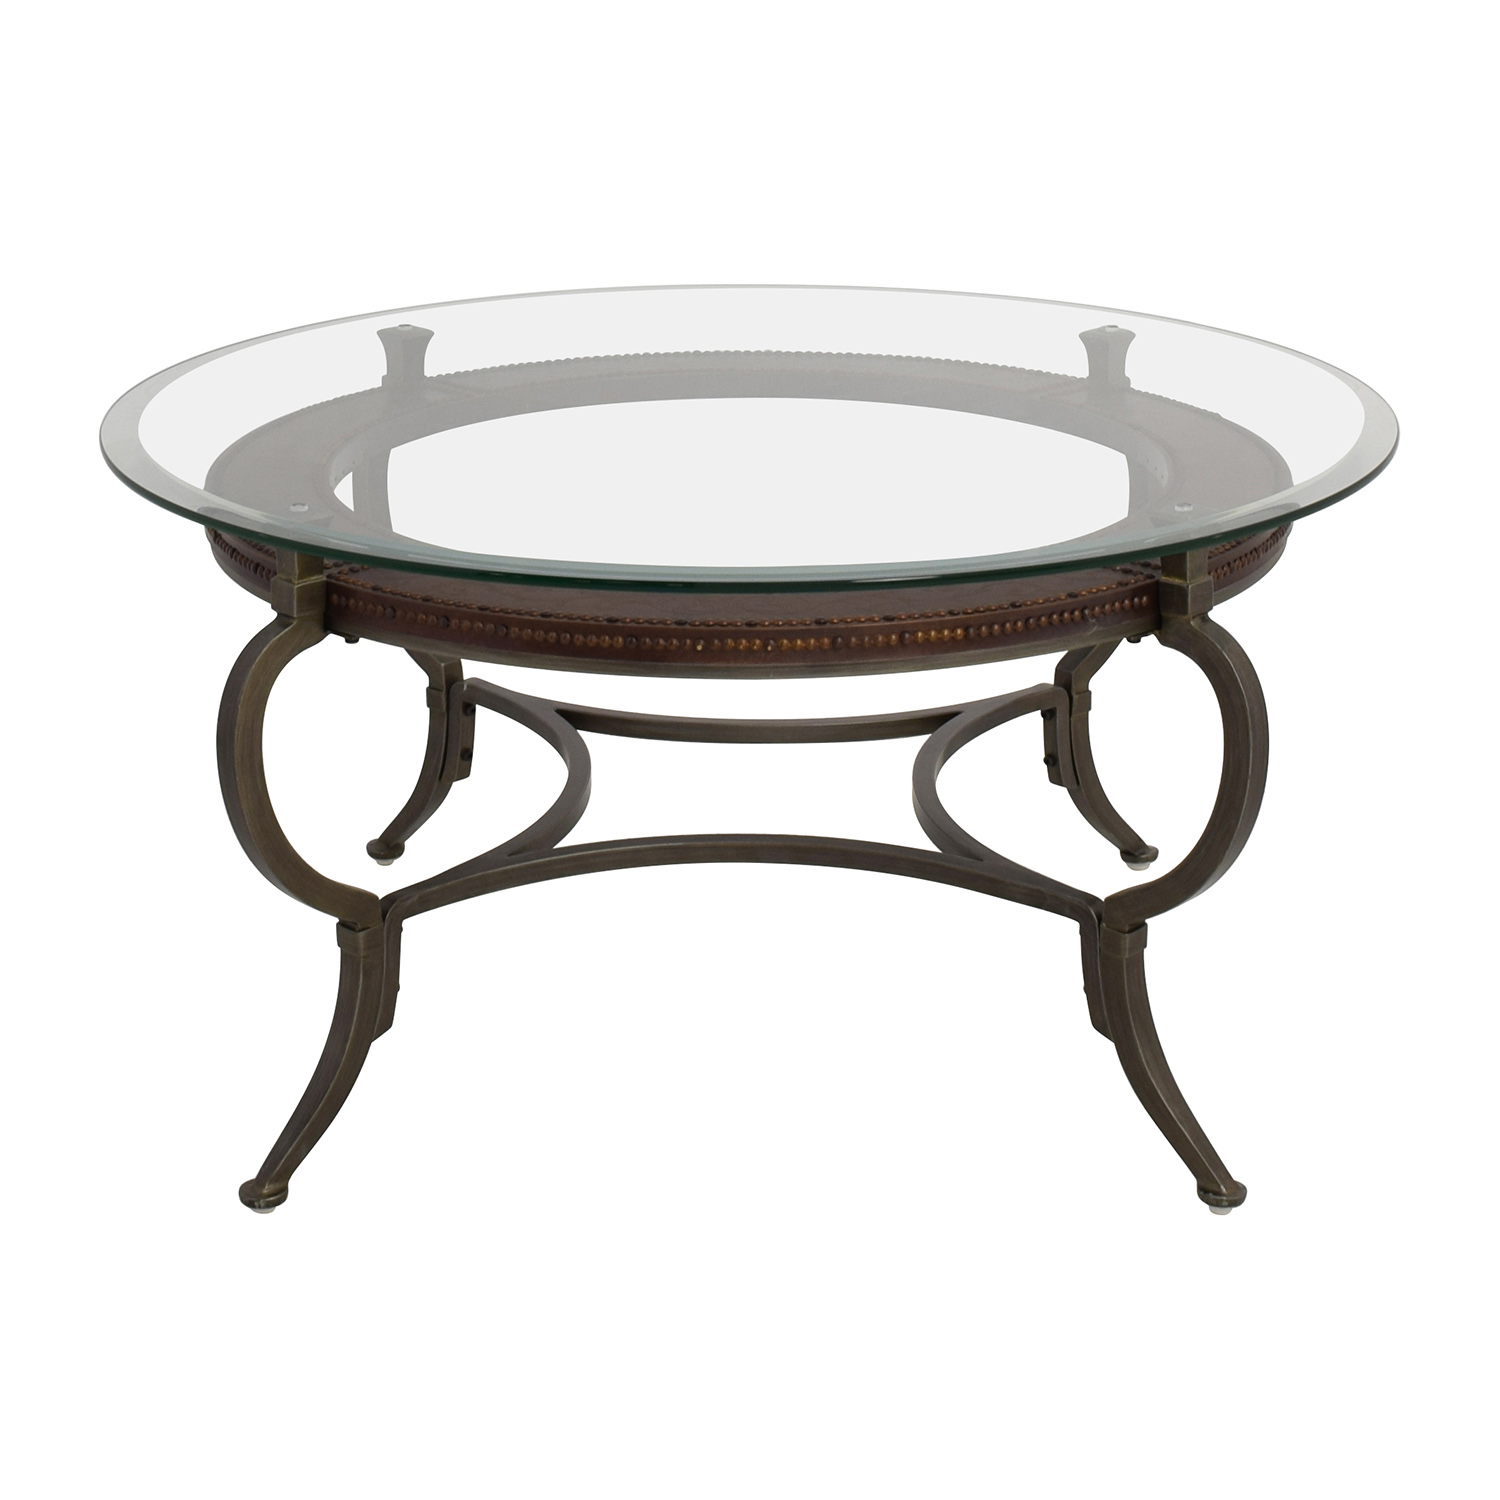 Macys end tables home design ideas and pictures Metal and glass coffee table